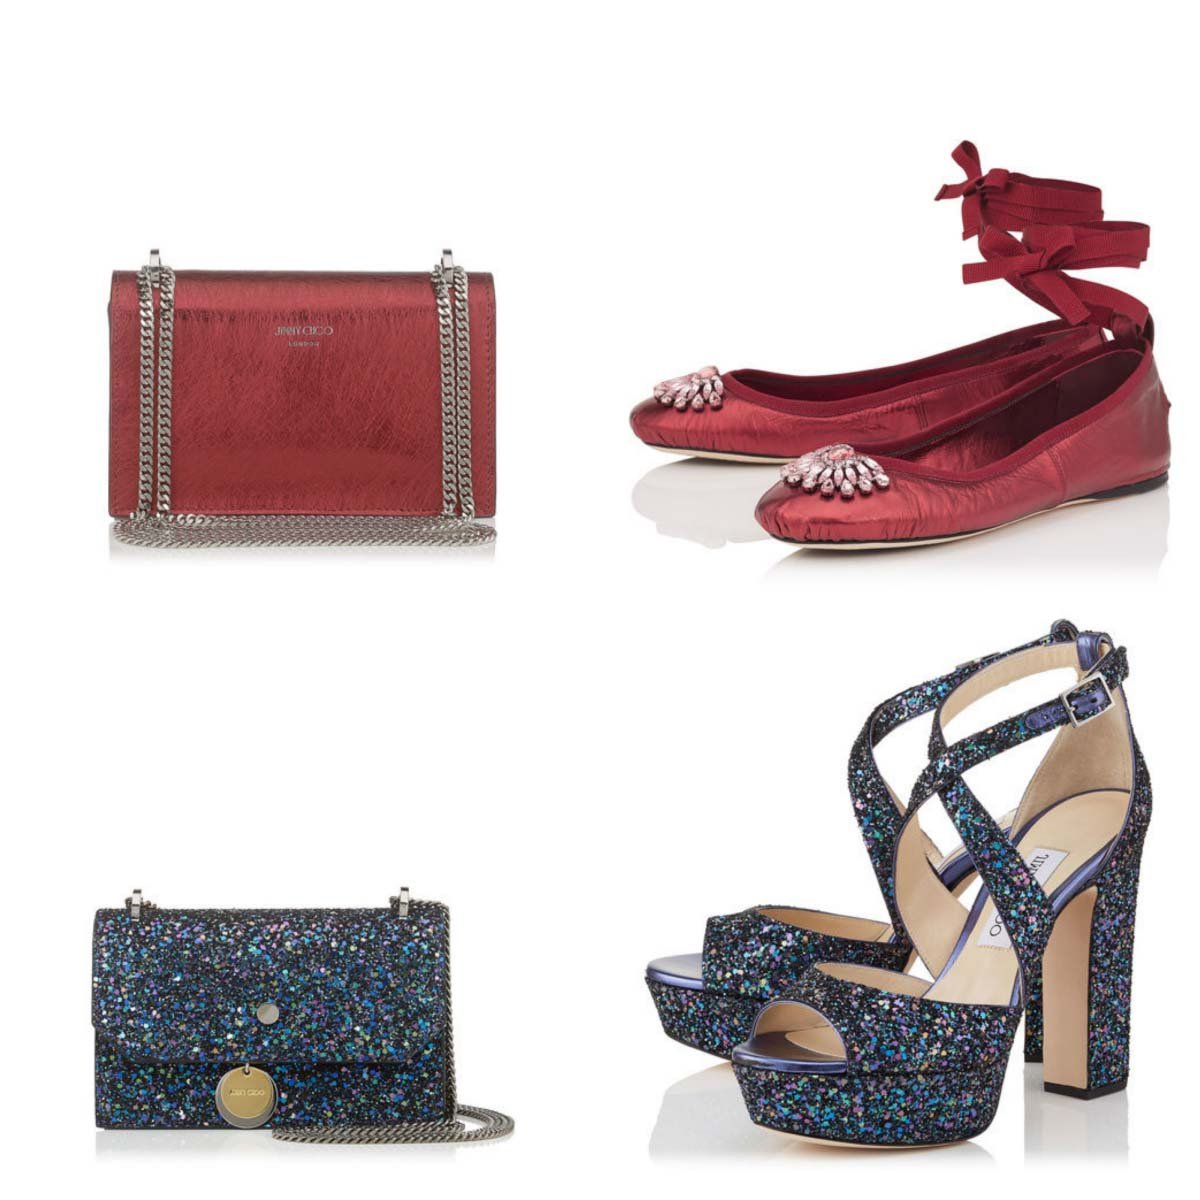 Jimmy Choo Latest Shoes and Handbags Collection 2017-2018 (6)